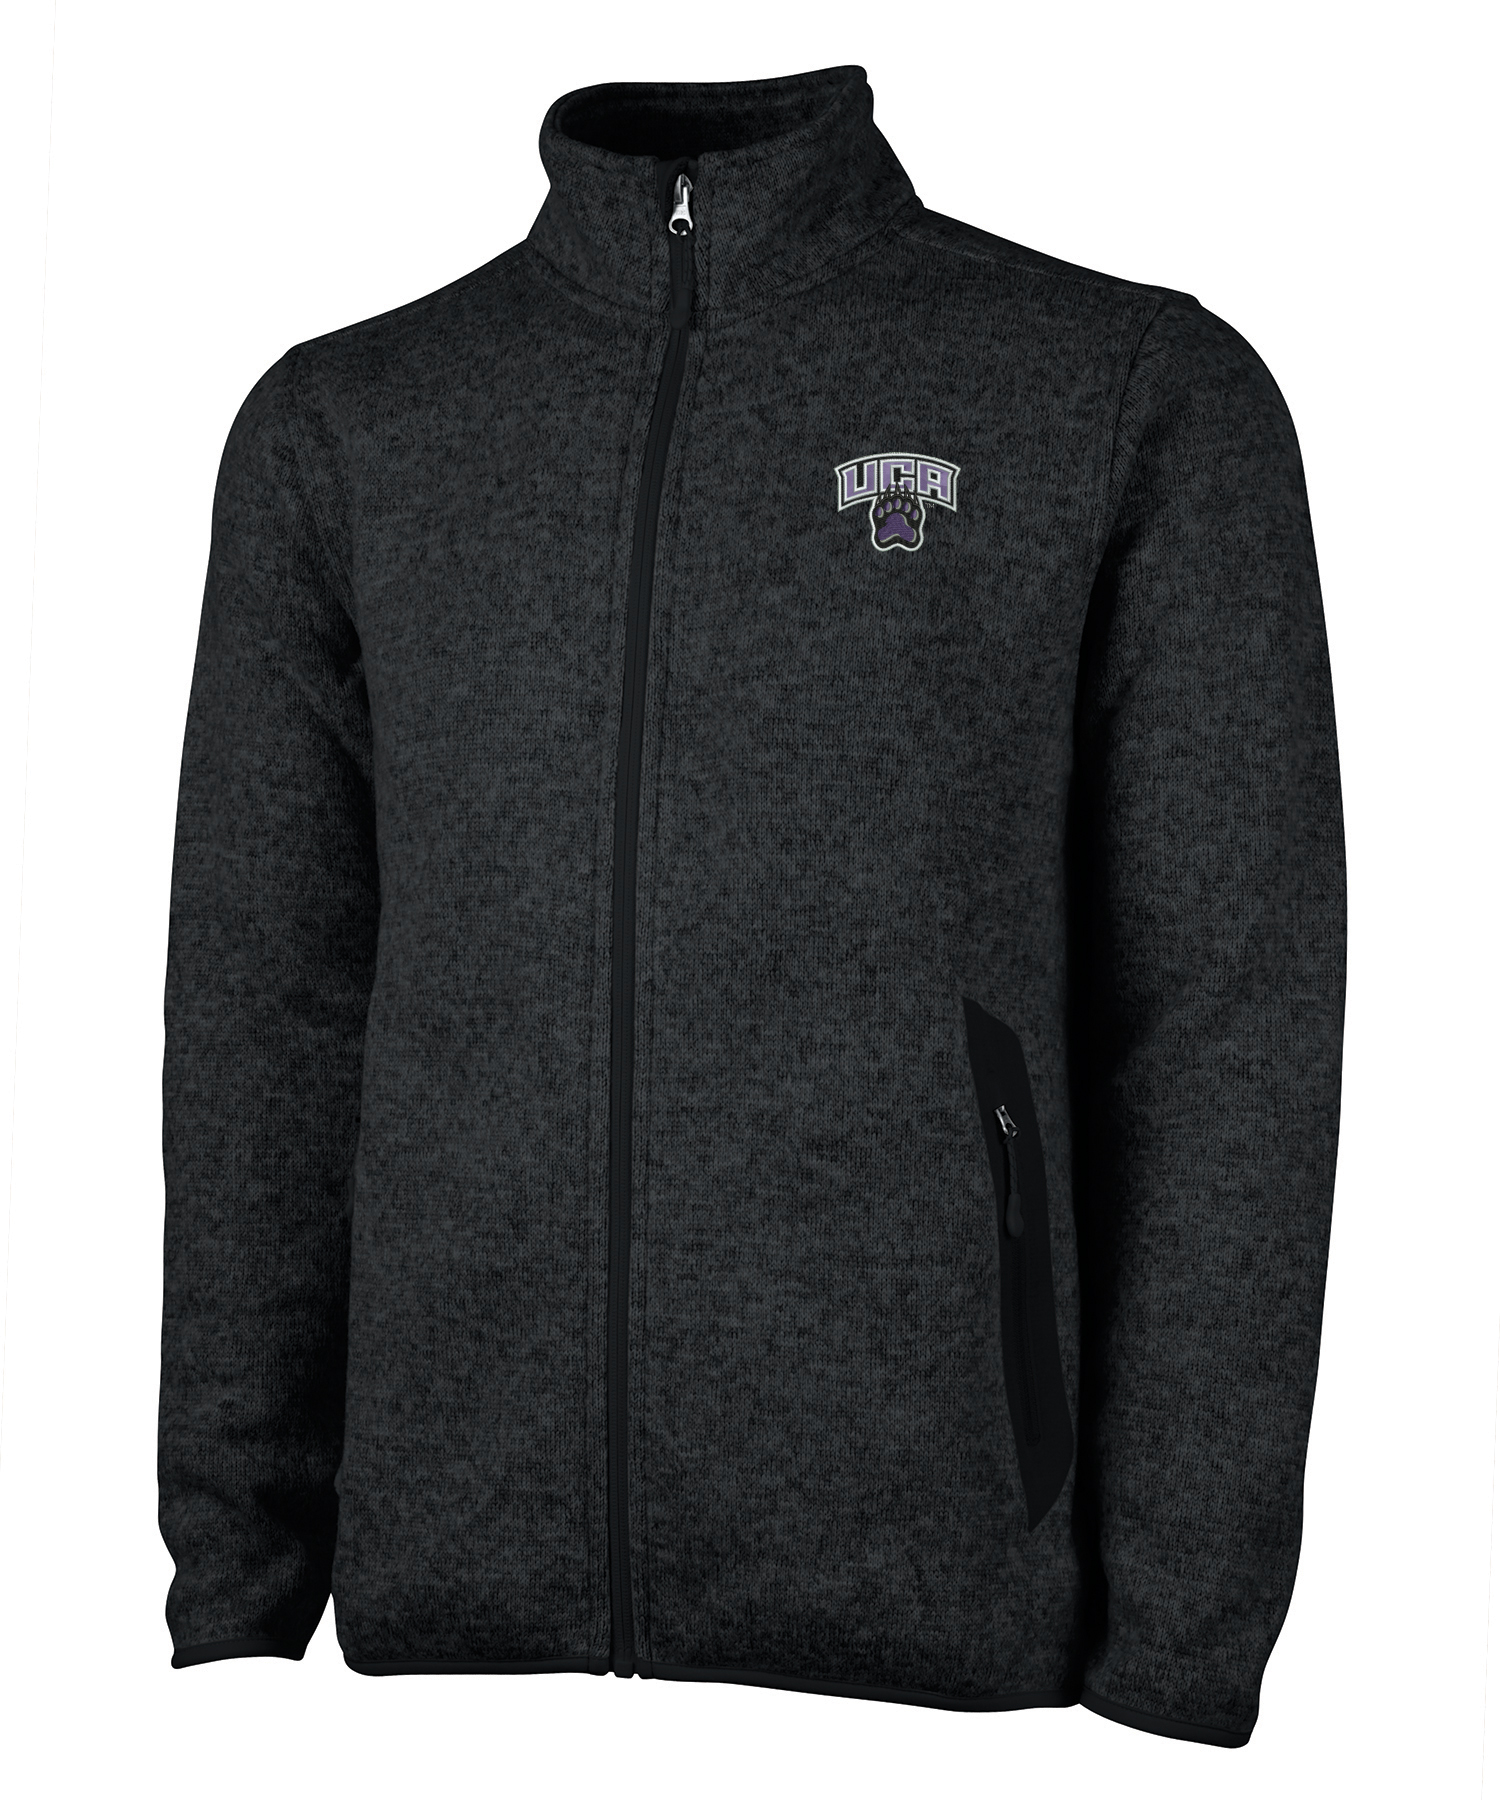 Men's Heathered Fleece Fullzip